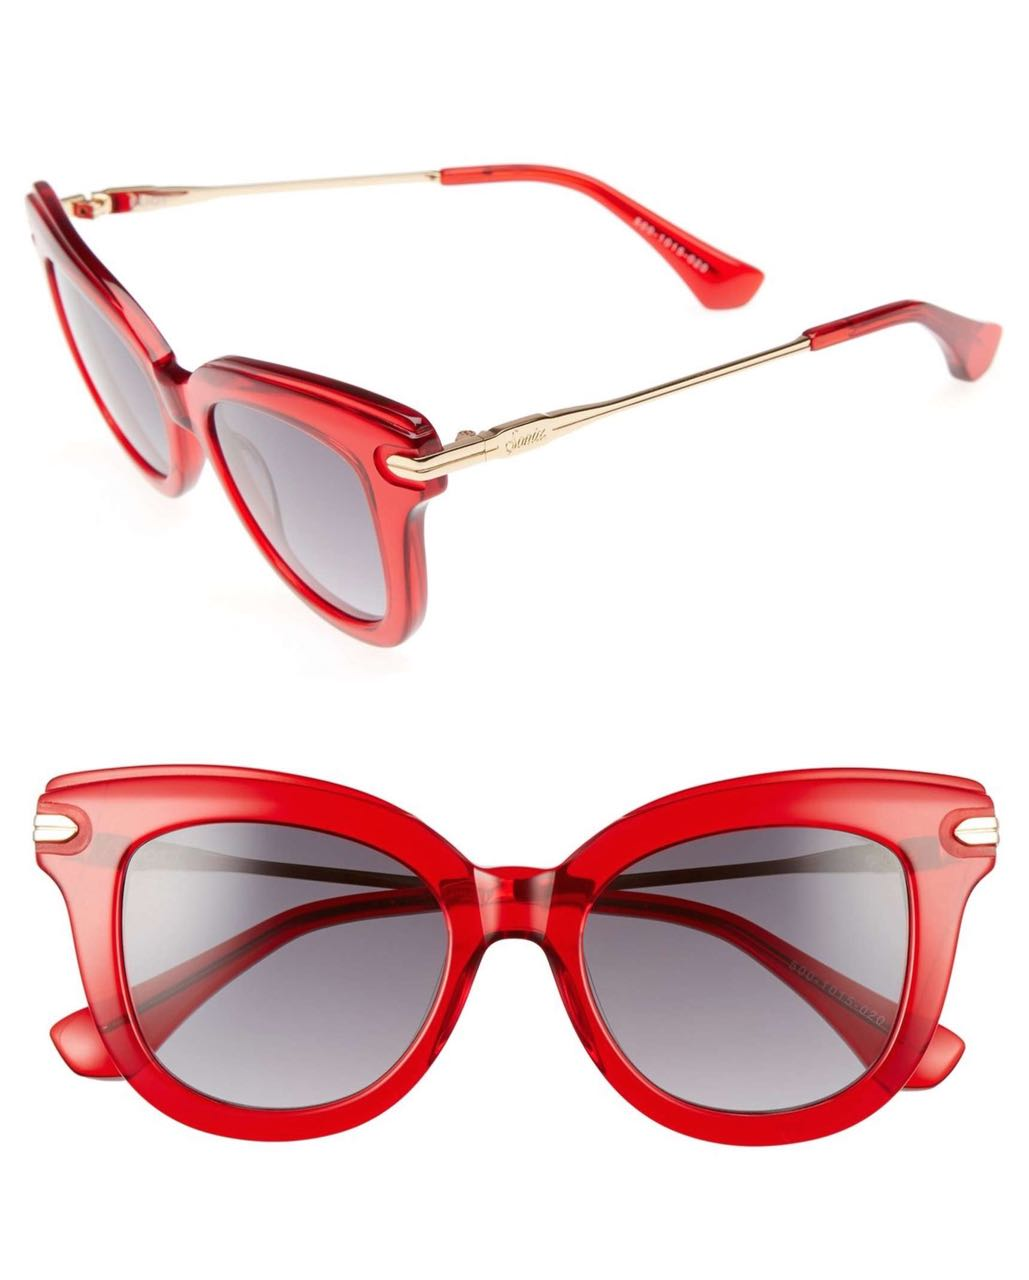 Sonix Red Sunglasses, Buy online